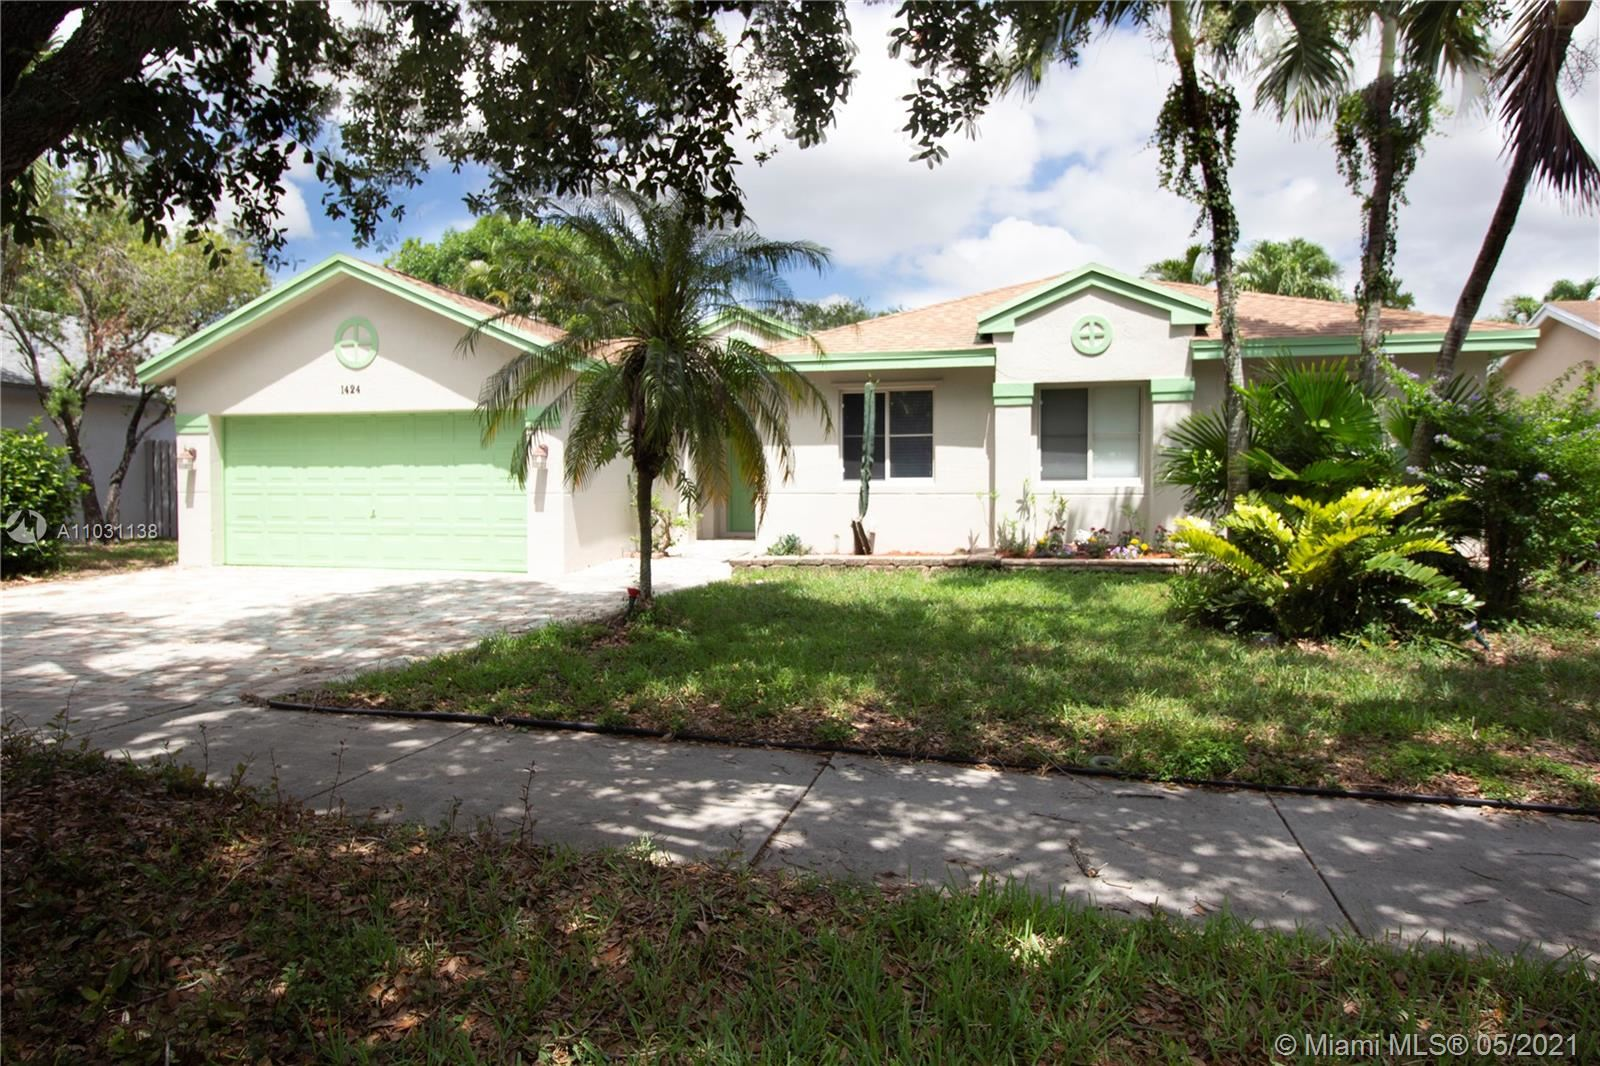 1424 NW 49th Ave, Coconut Creek, FL 33063 - #: A11031138